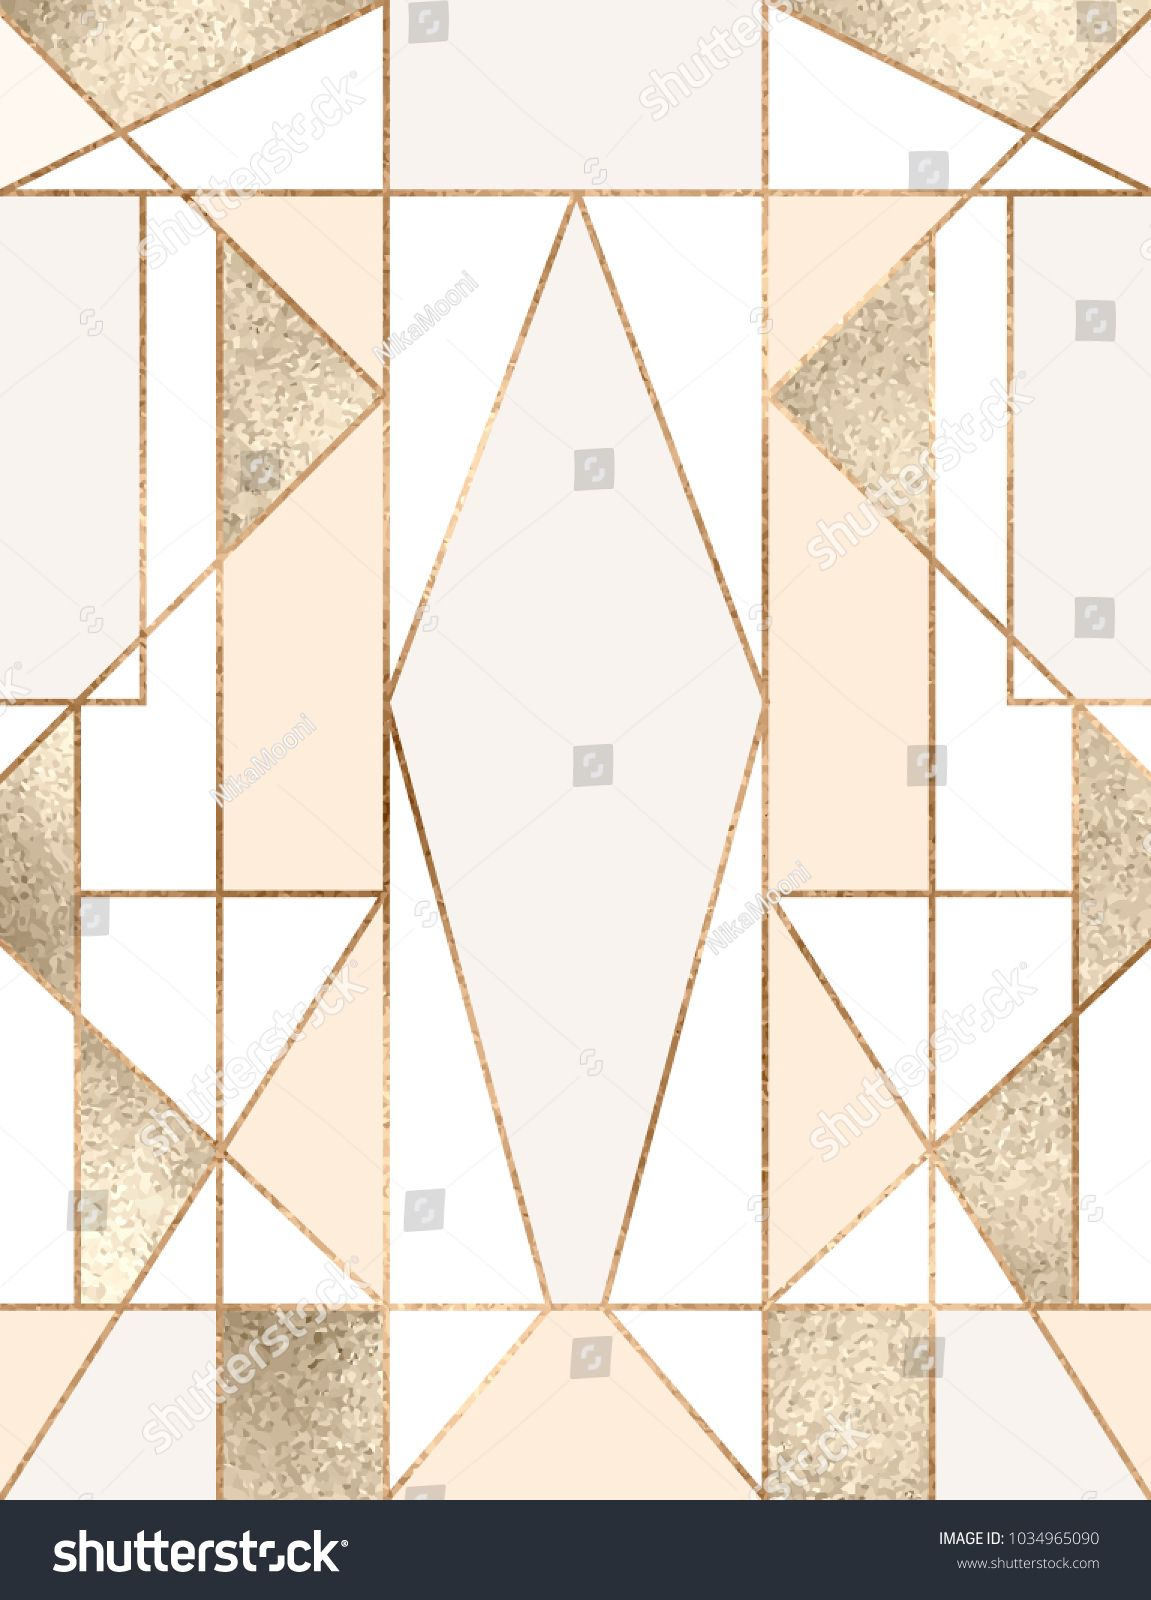 Art deco background with gold glitter geometric shapes, triangles, rectangles, lines, squares. #Ad , #spon, #gold#glitter#background#Art #goldglitterbackground